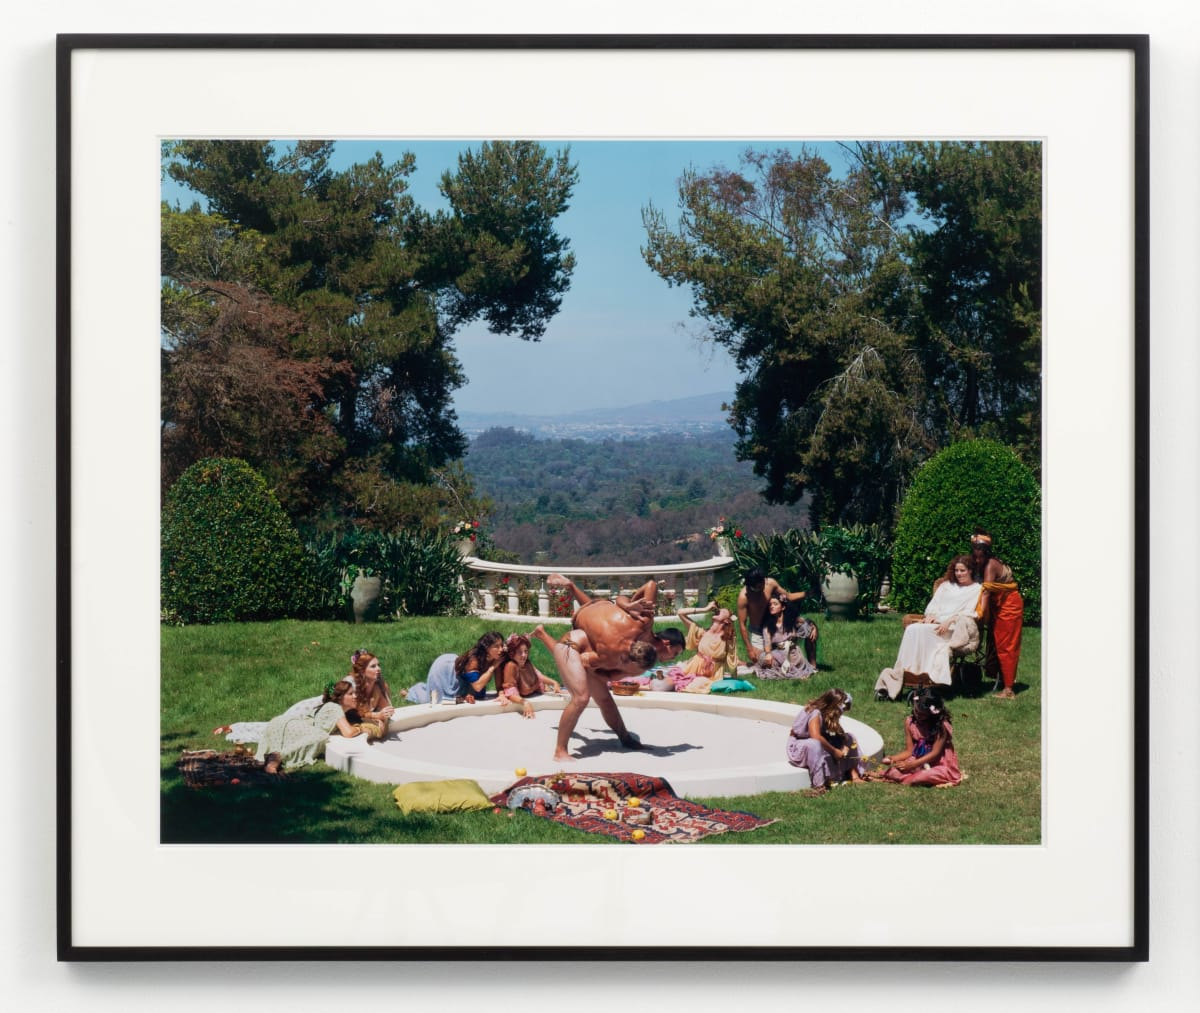 """Eleanor ANTIN A Hot Afternoon from """"The Last Days of Pompeii"""", 2002 Chromogenic print 60.5 x 76 cm Edition 1 of 3"""